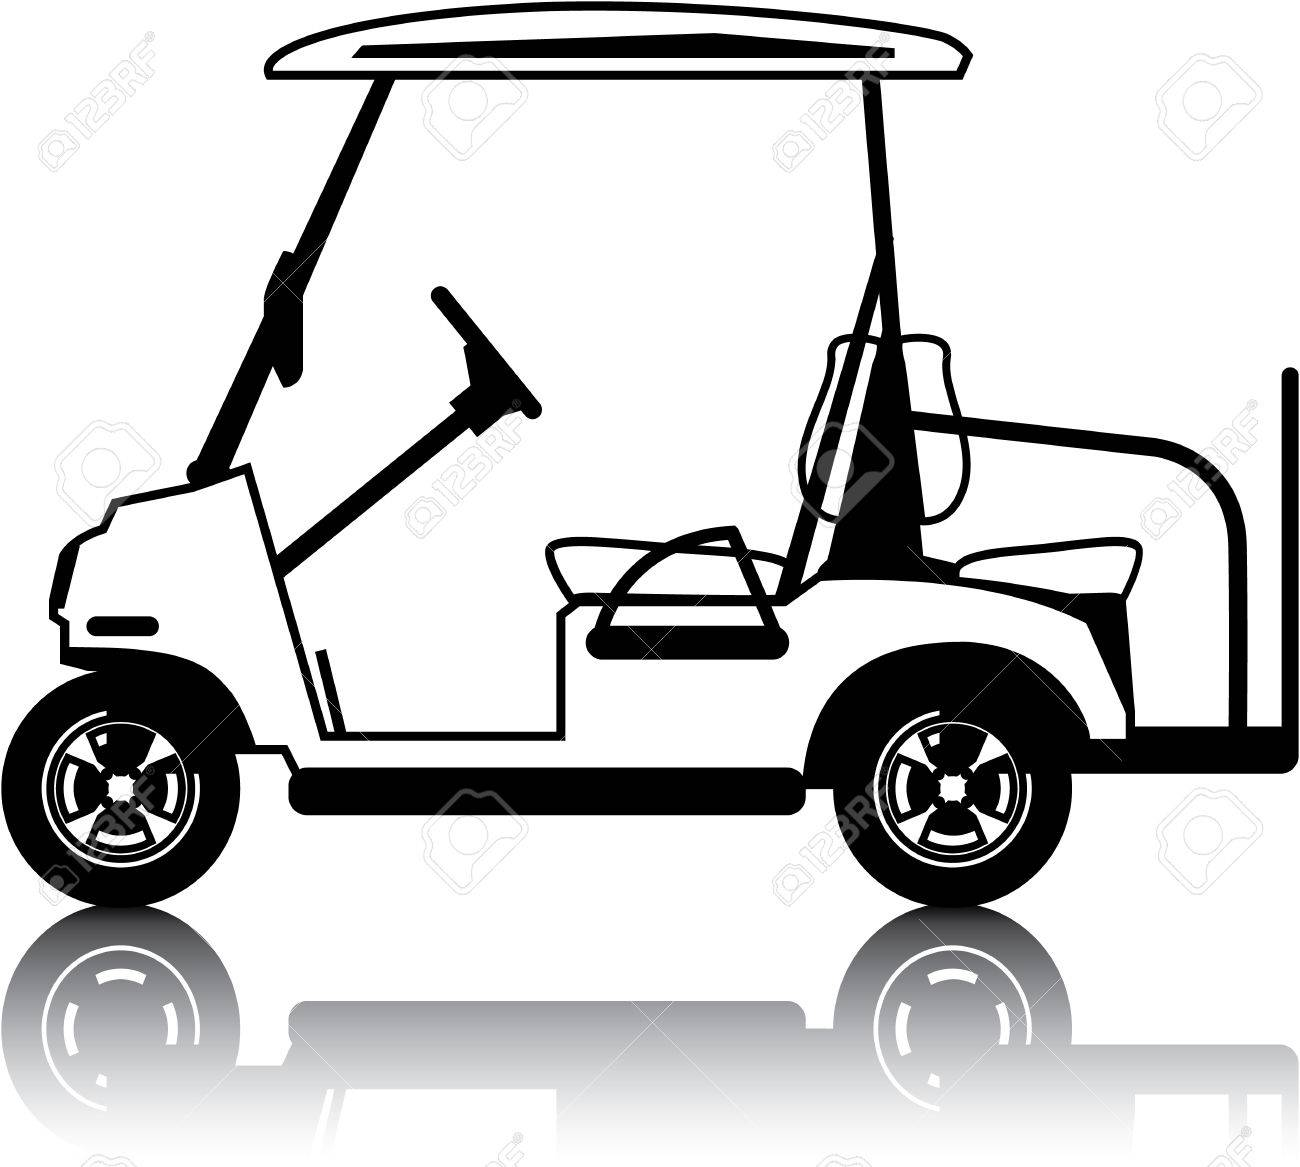 White golf cart vehicle clip.